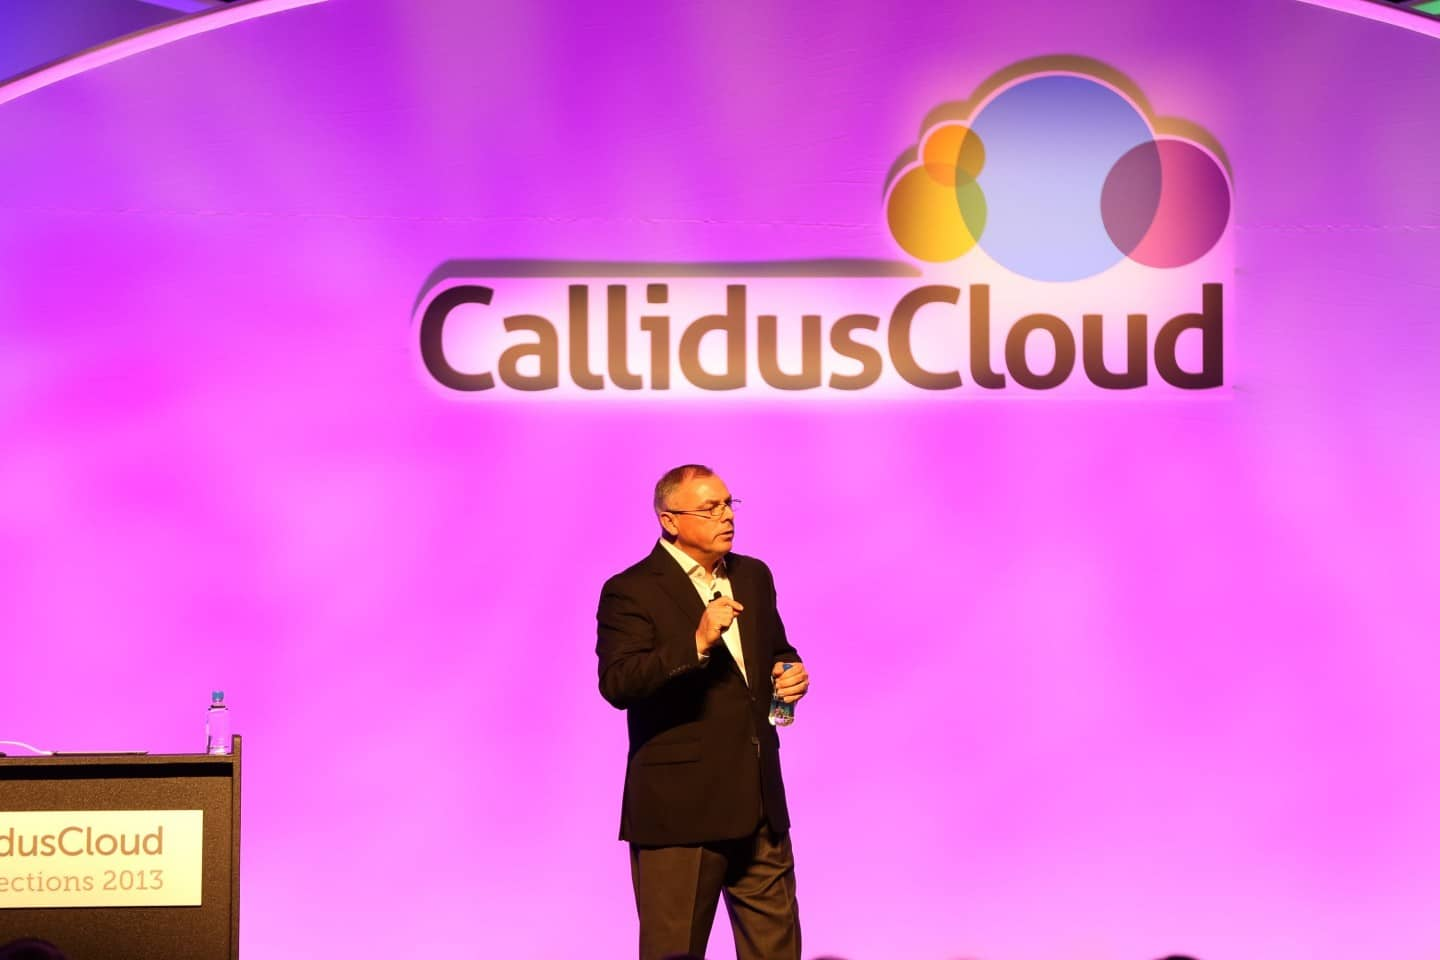 CallidusCloud to Establish New Data Centre in Canada